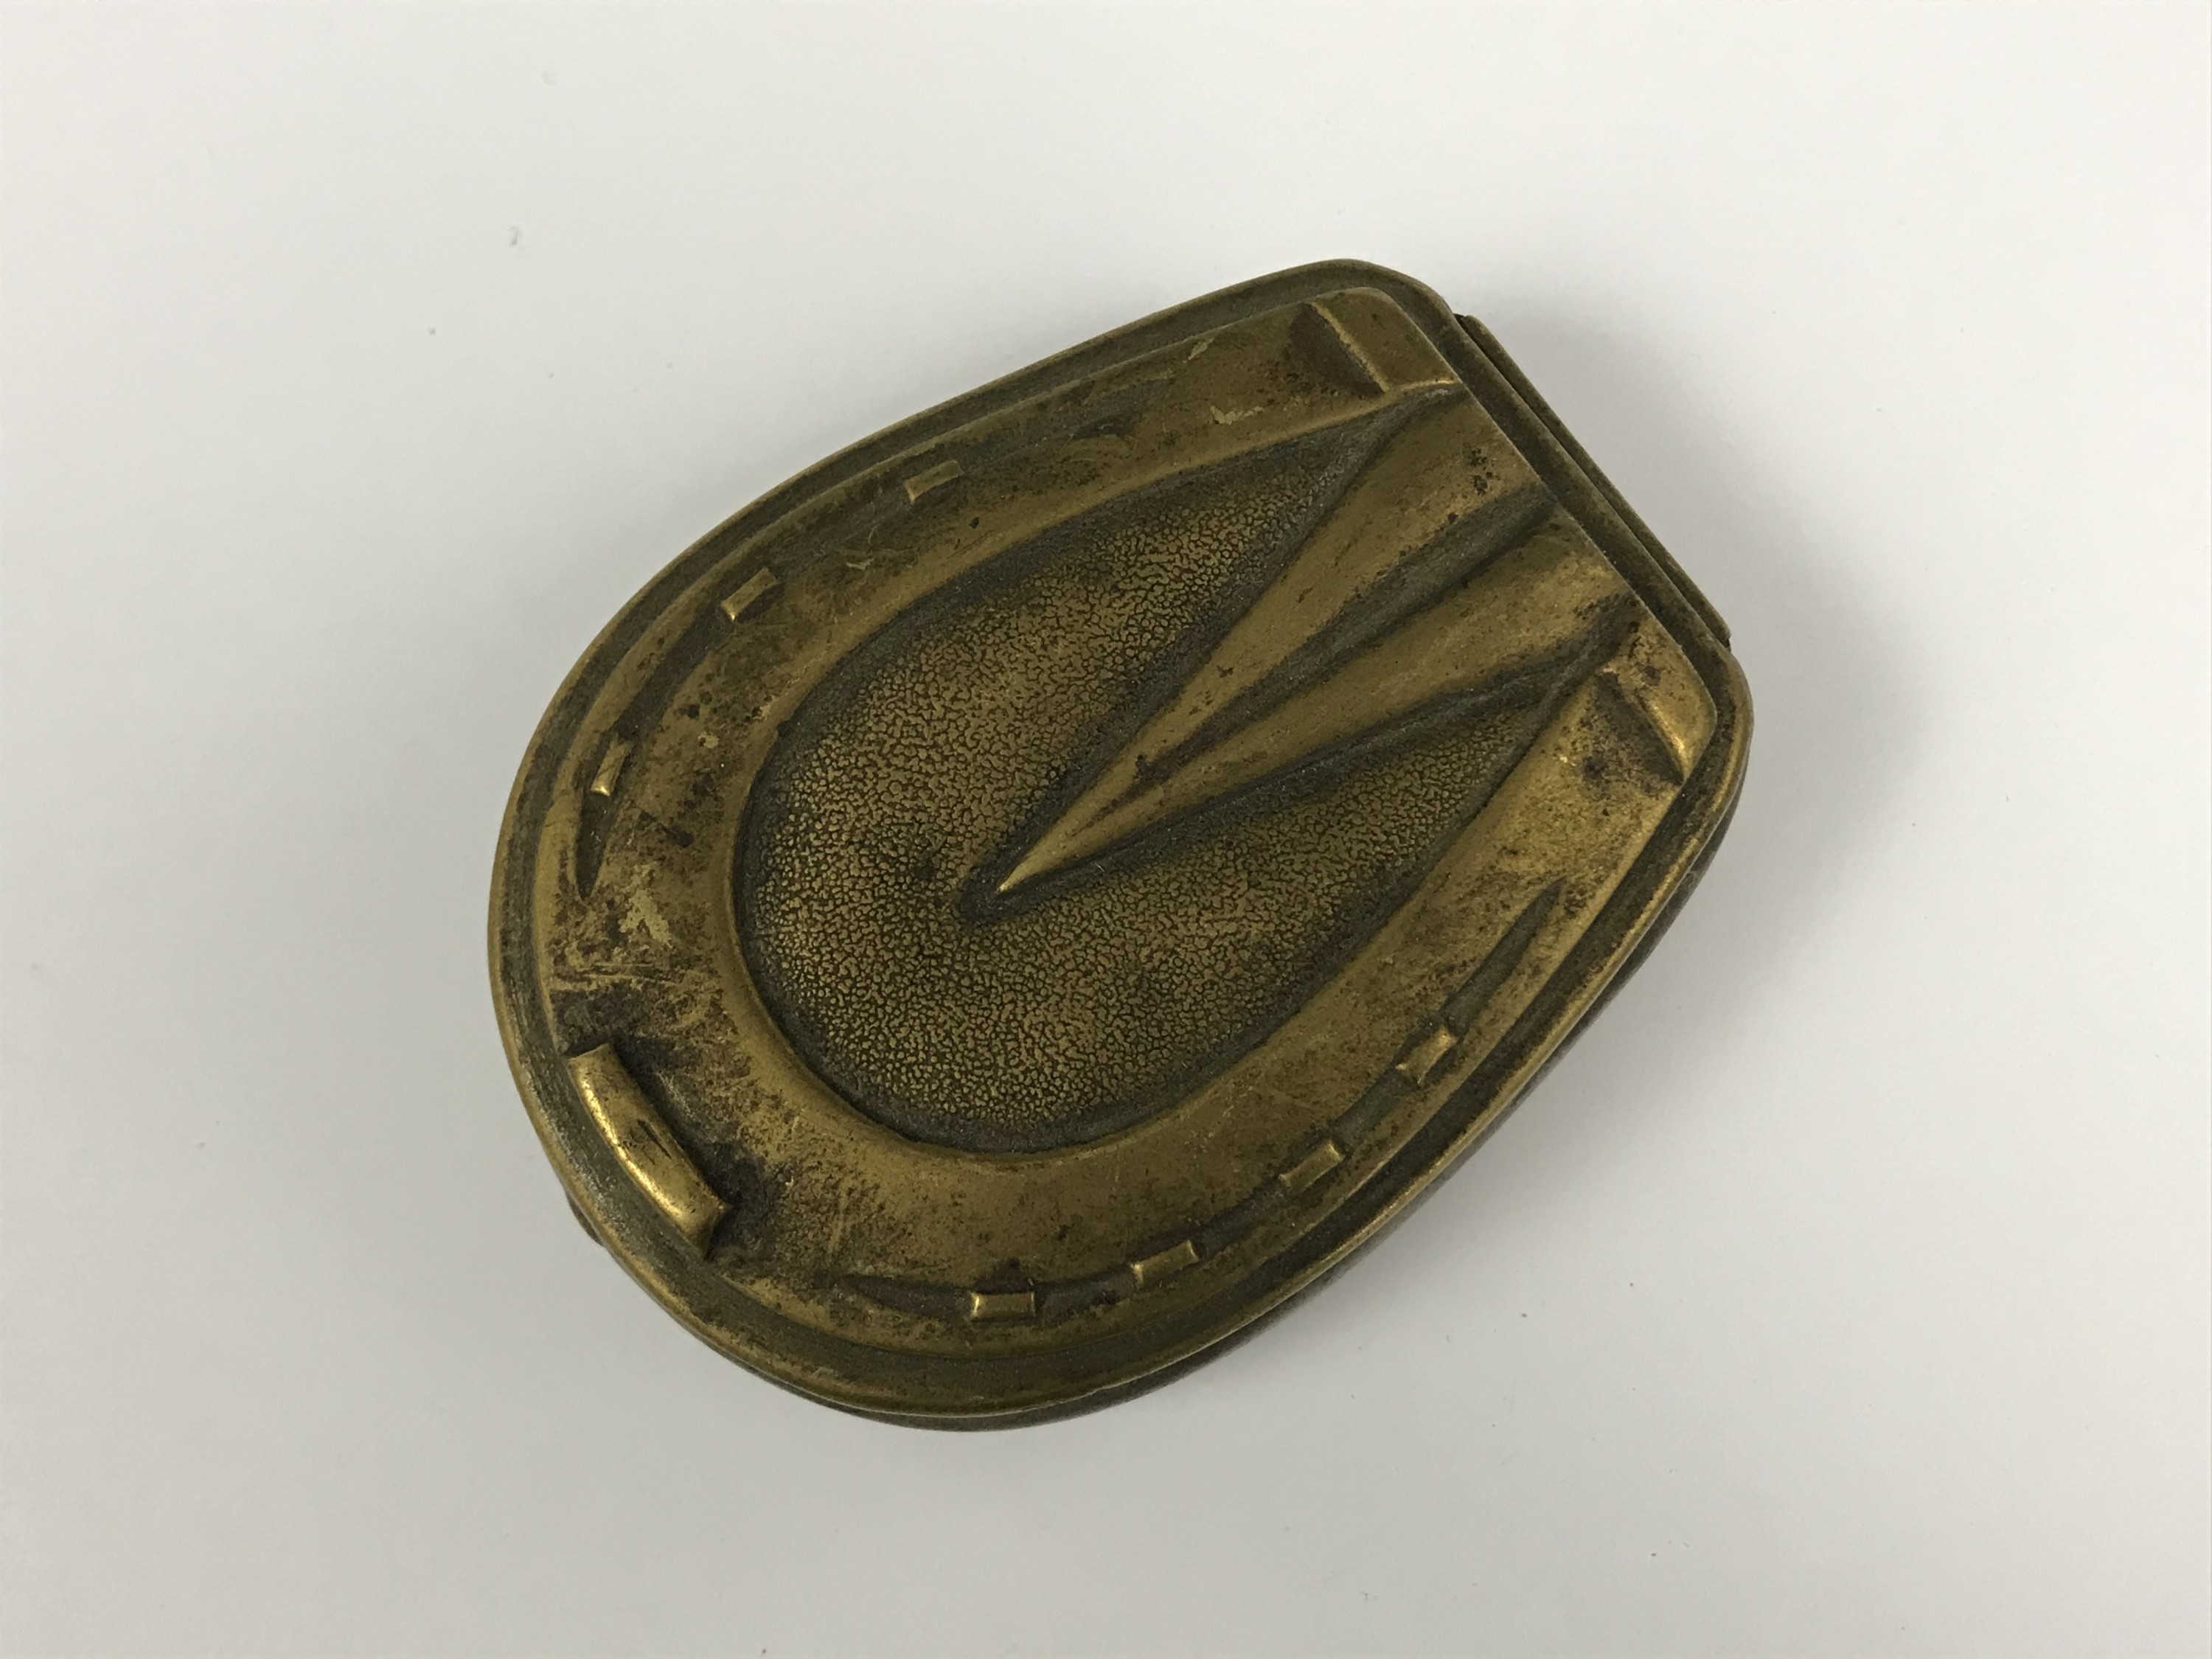 Lot 25 - A Victorian brass pocket snuff box, the hinged lid modelled as a horses hoof / shoe